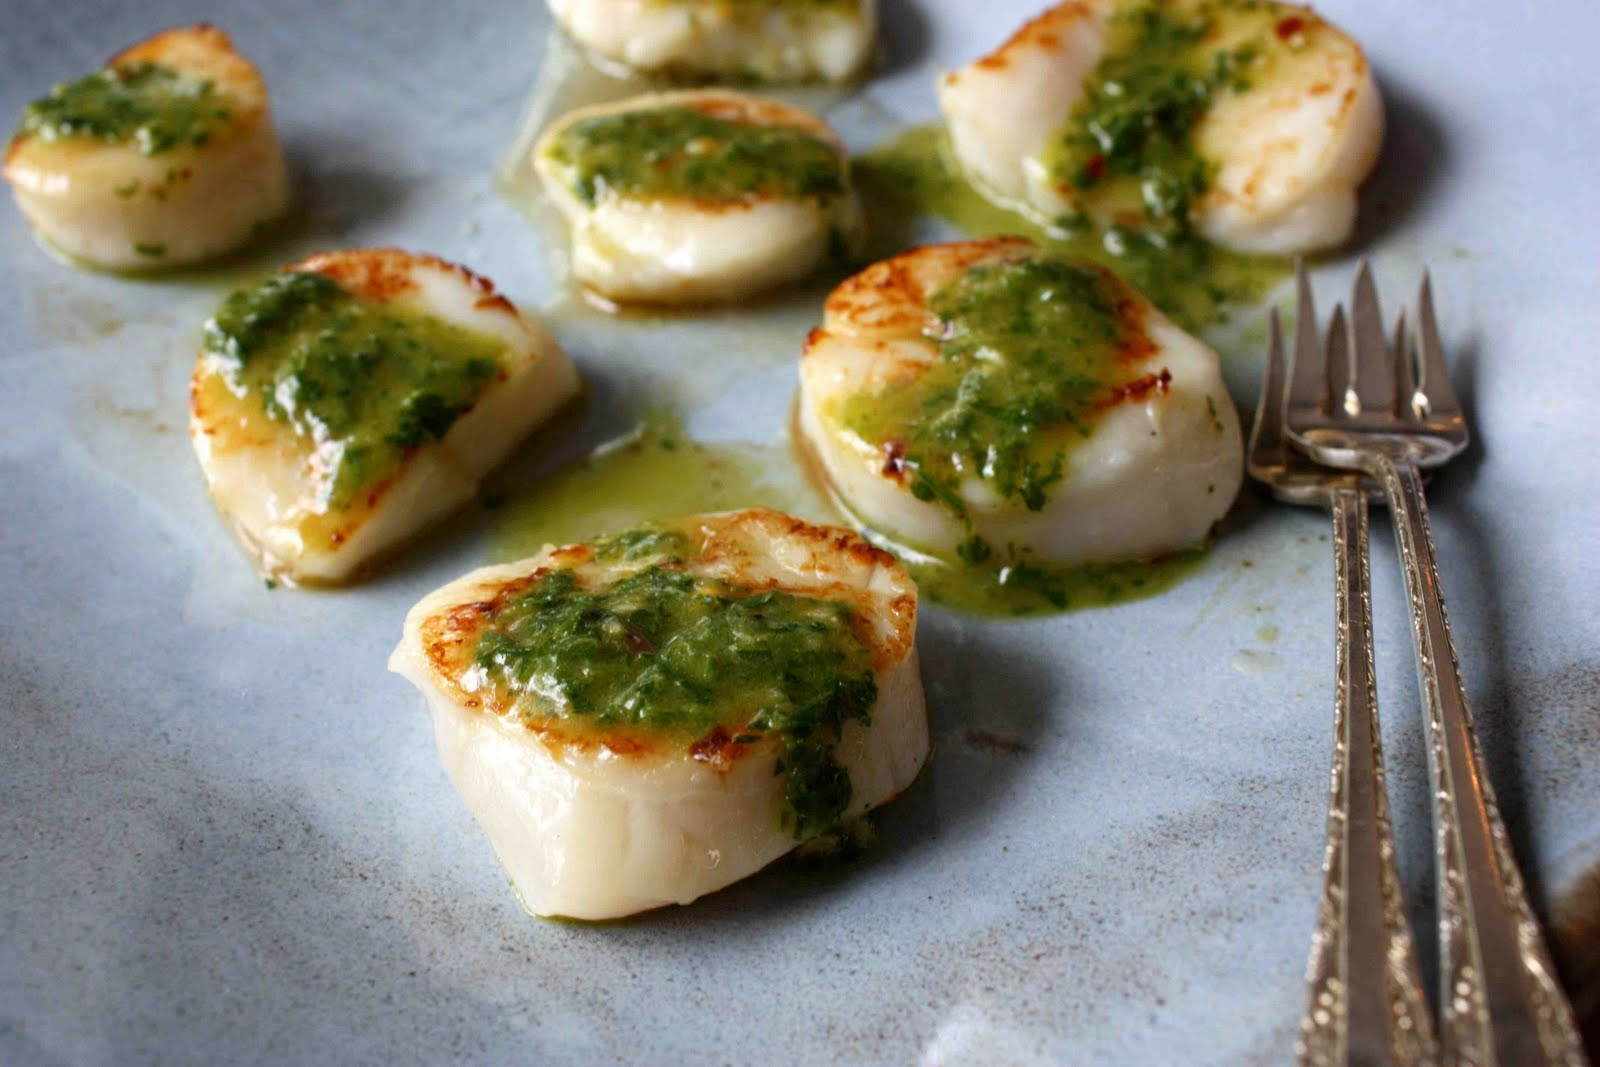 Seared Scallops with Chimichurri Dressing Recipe - Cookin Canuck